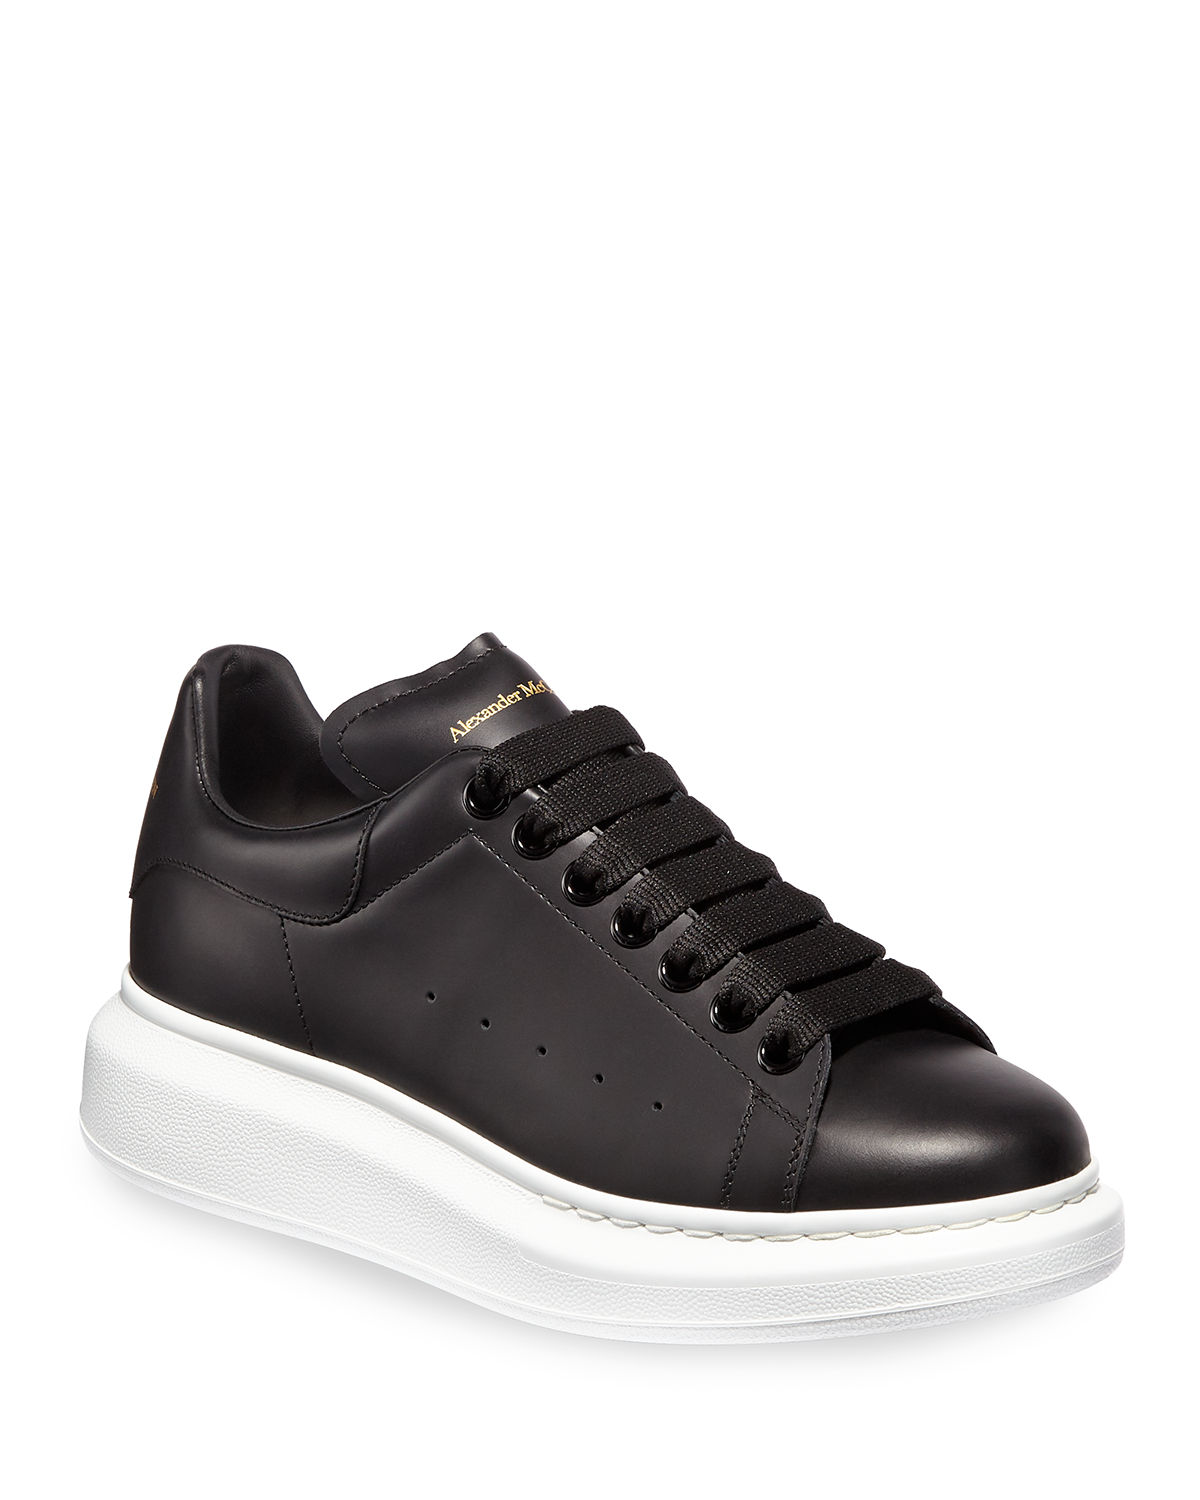 db30e7bc7 Alexander McQueen Pelle Lace-Up Sneakers